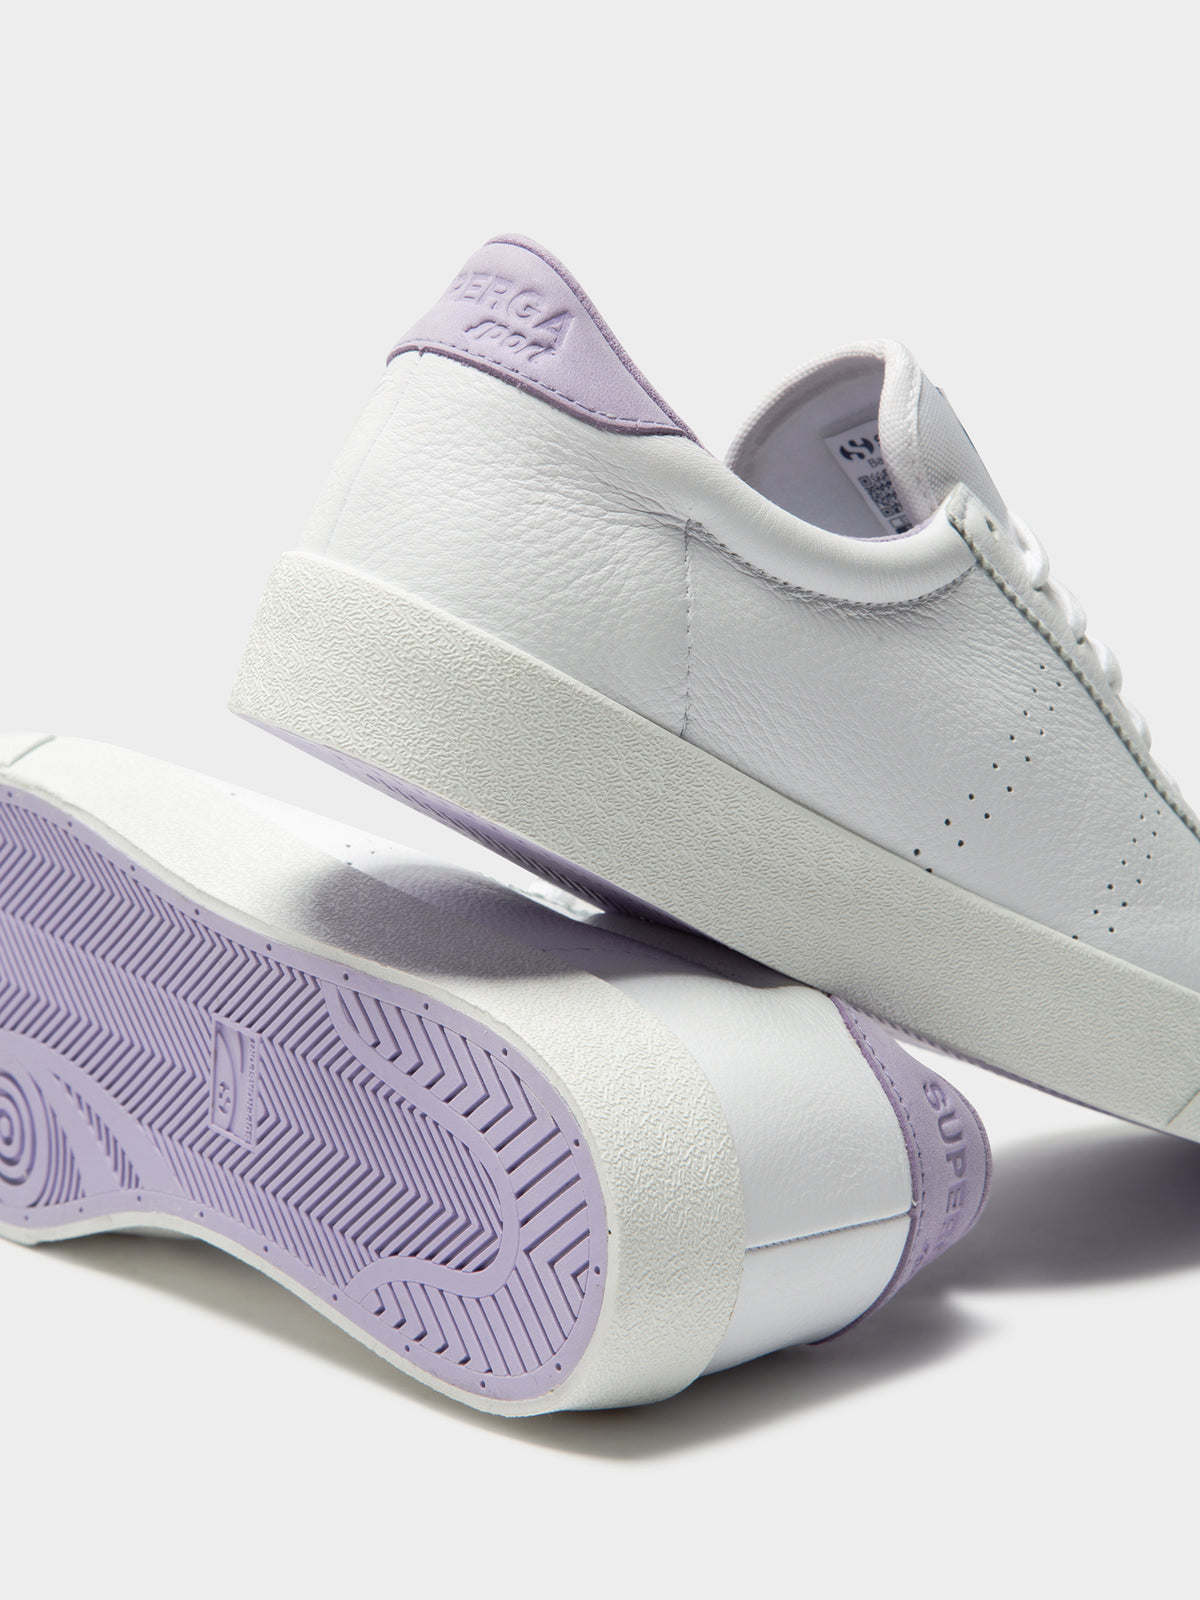 Womens 2843 Clubs Comfleau Sneakers in White & Violet